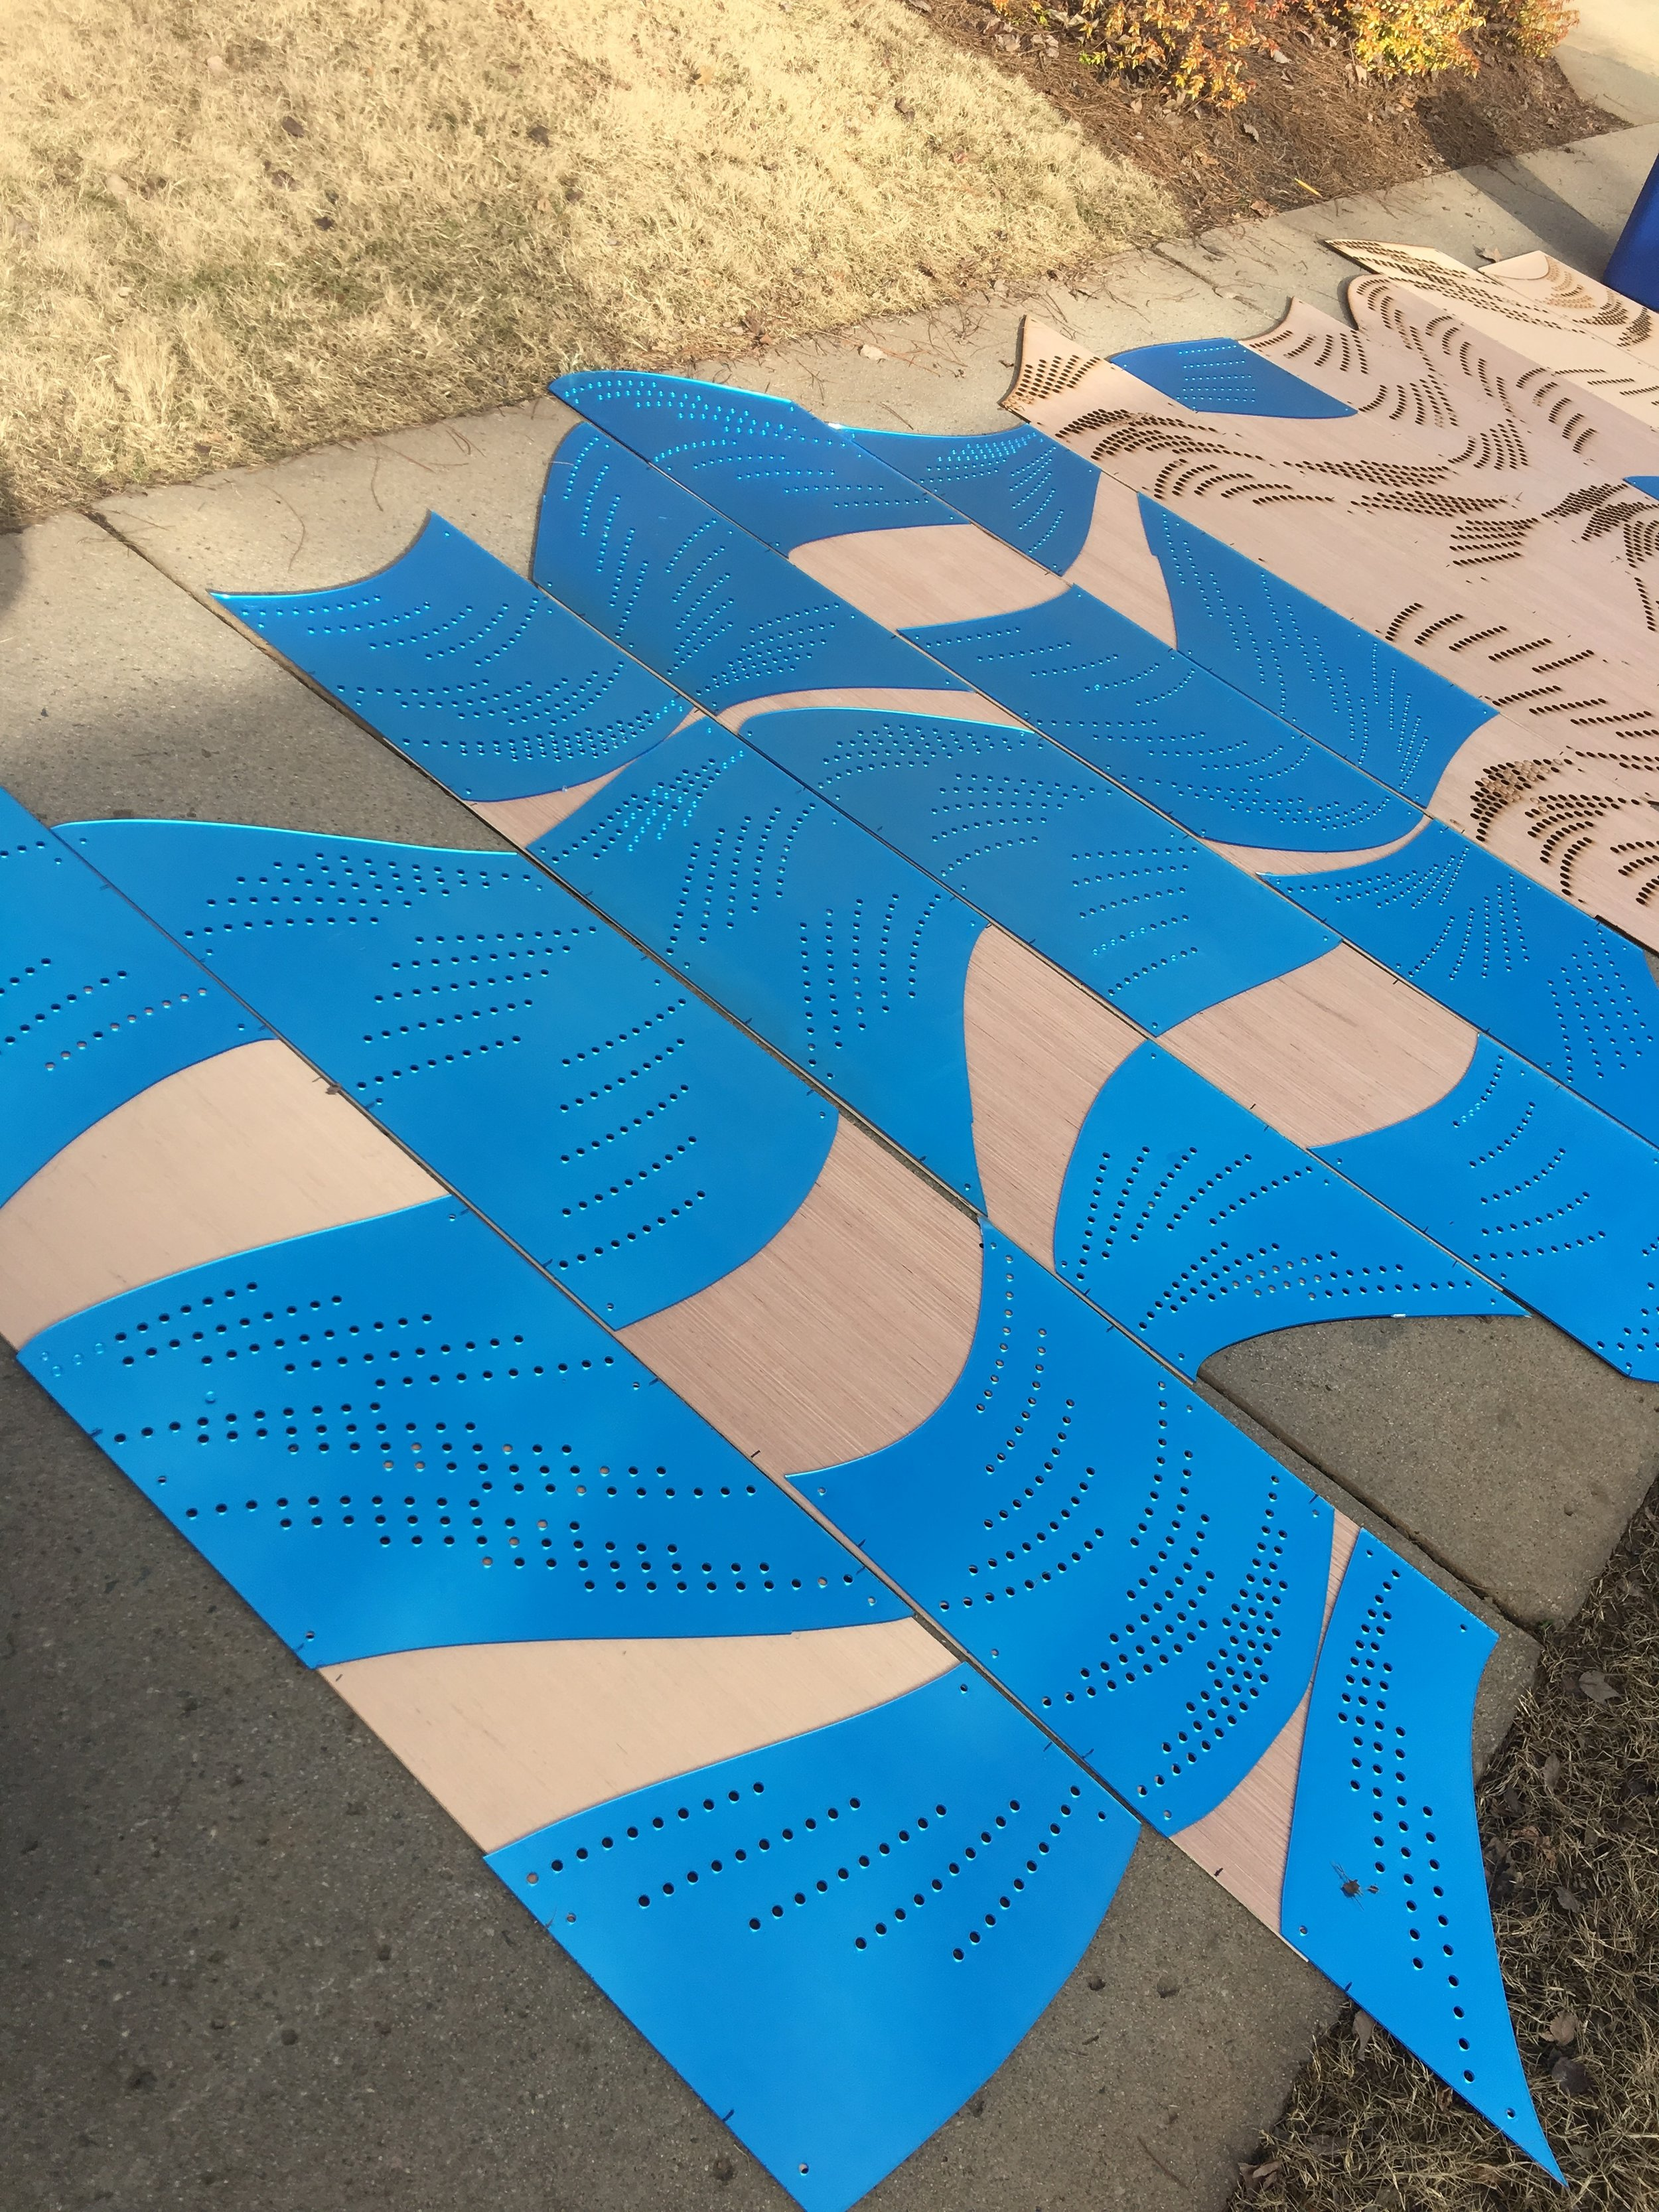 Lining up mirrored acrylic pieces with the plywood